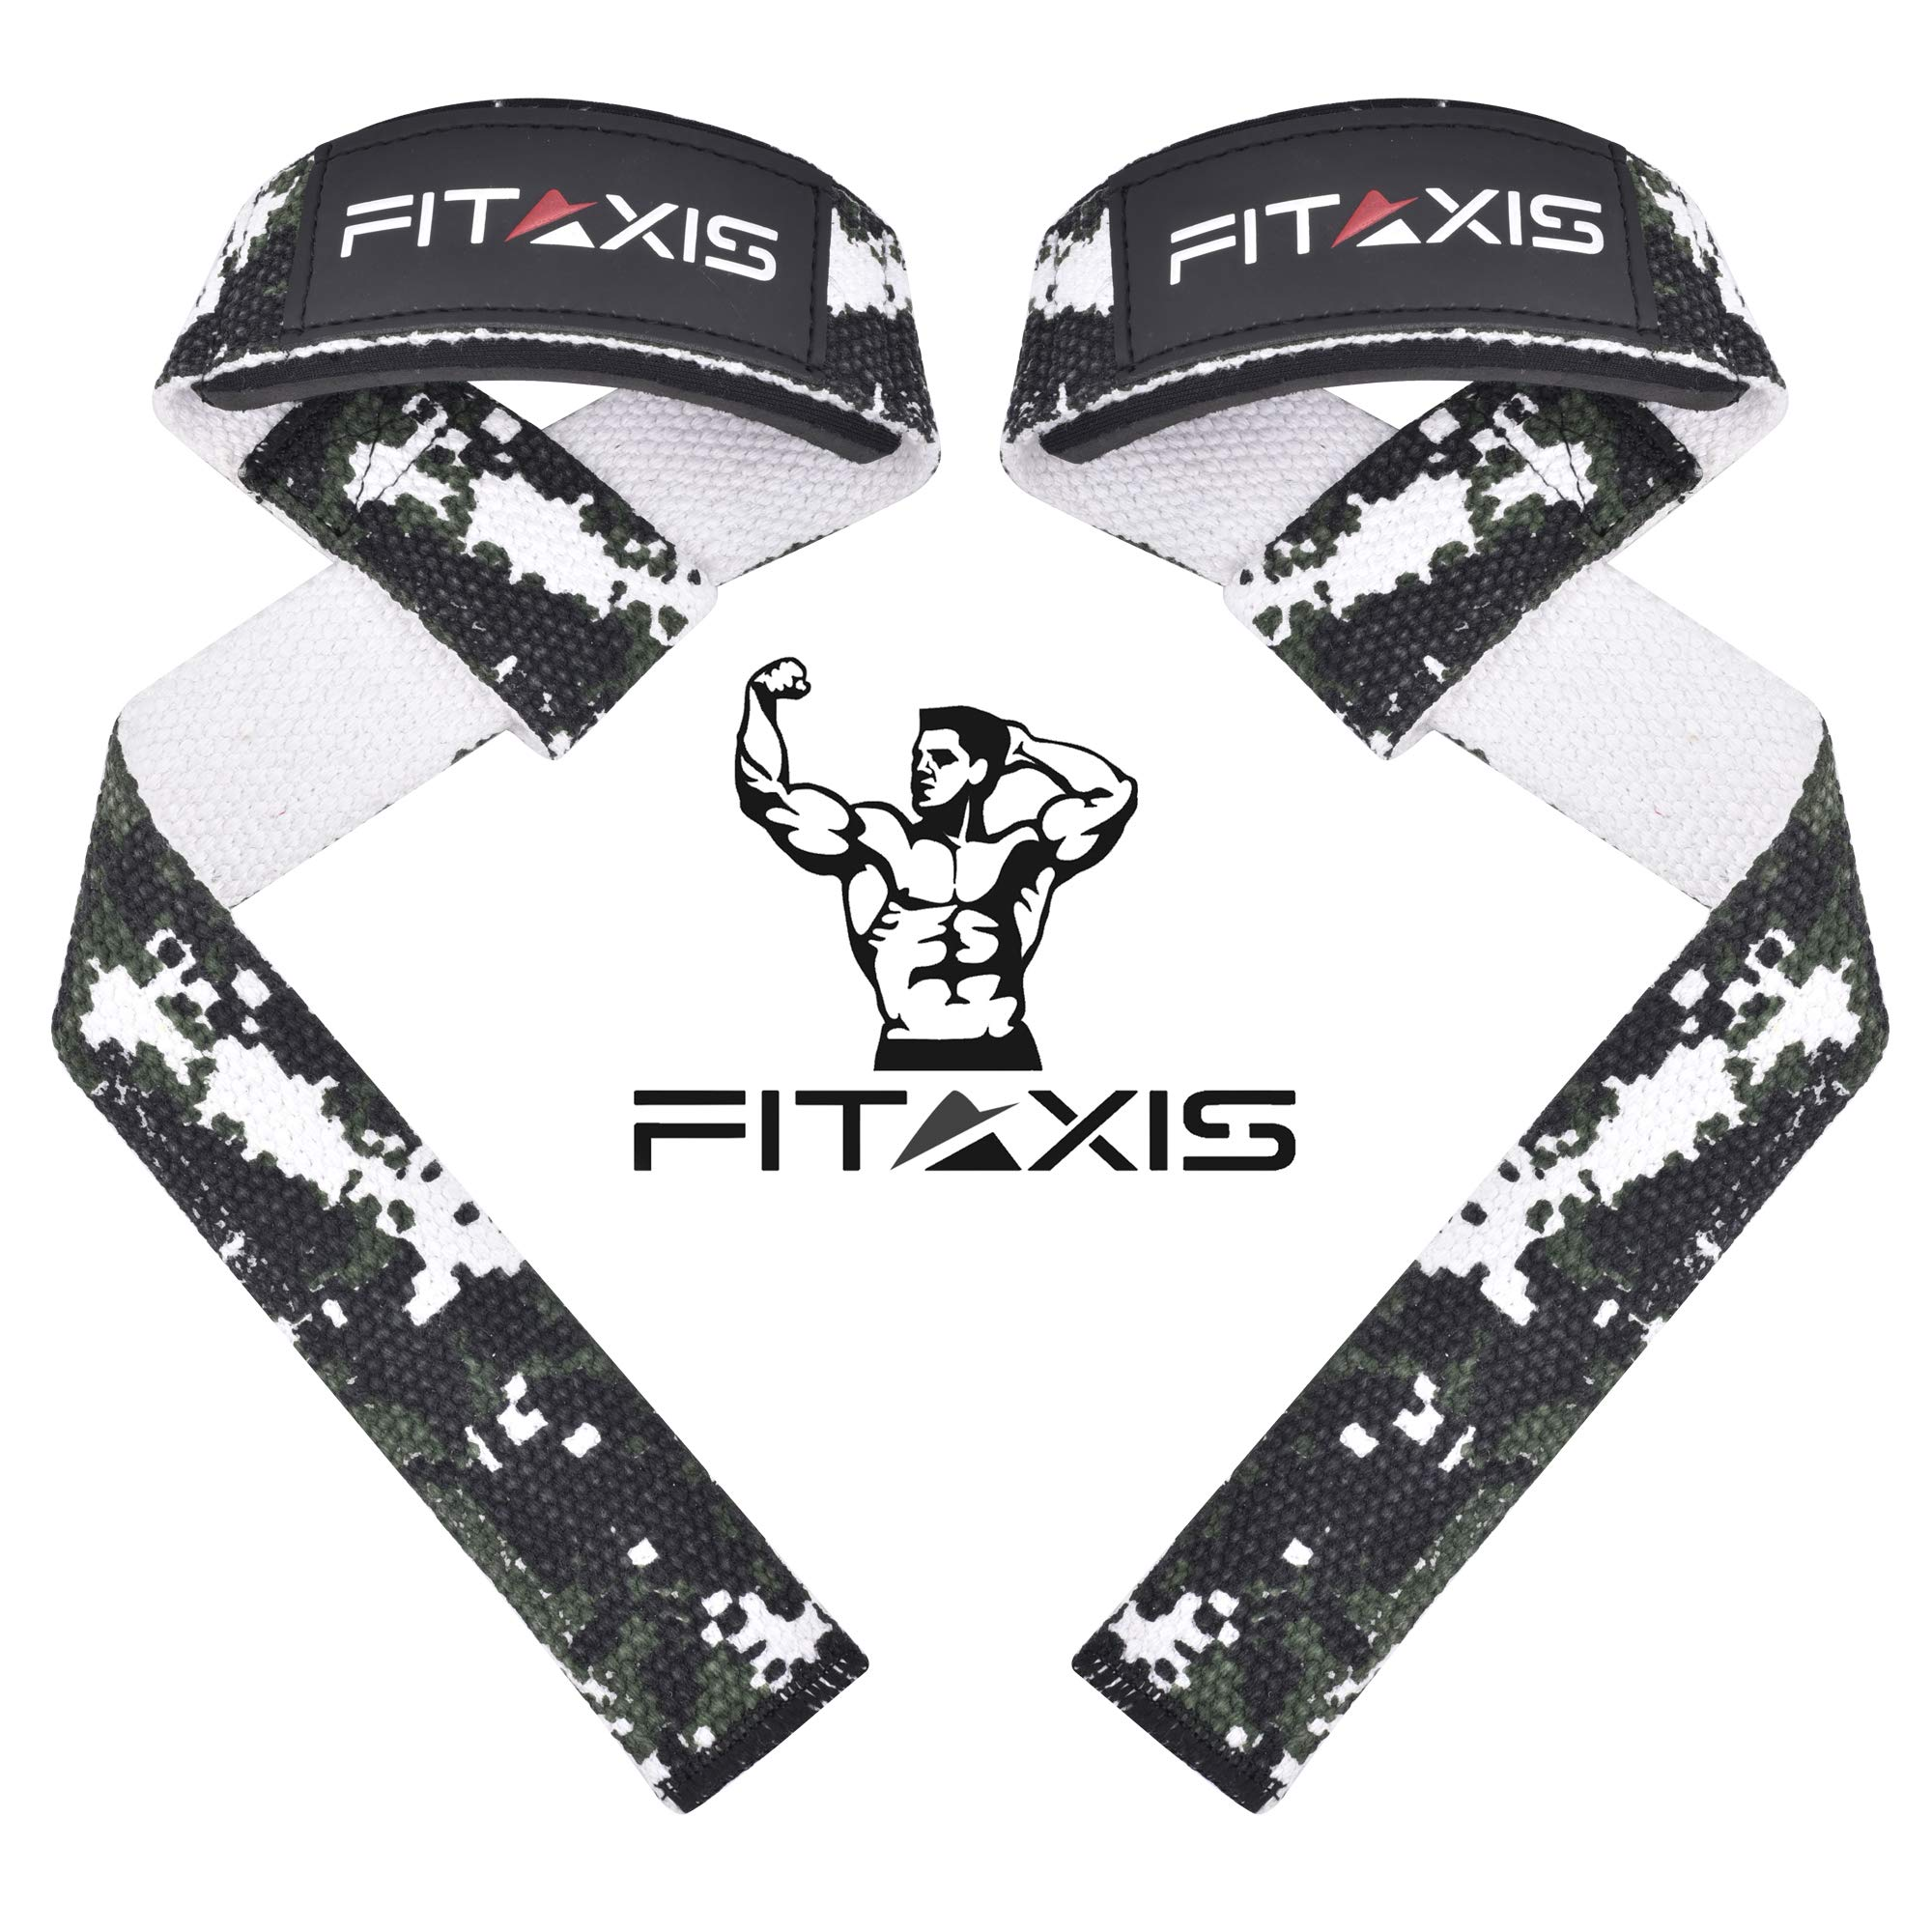 "FITAXIS Weight Lifting Straps 22"" Digital Camo Green,Non-Slip Gel Grip,Wrist & forearms for Heavy Deadlift,Rows,Shrugs,Dumbbell,Squats,Pull-Up (DIGI CAMO Green, 22"